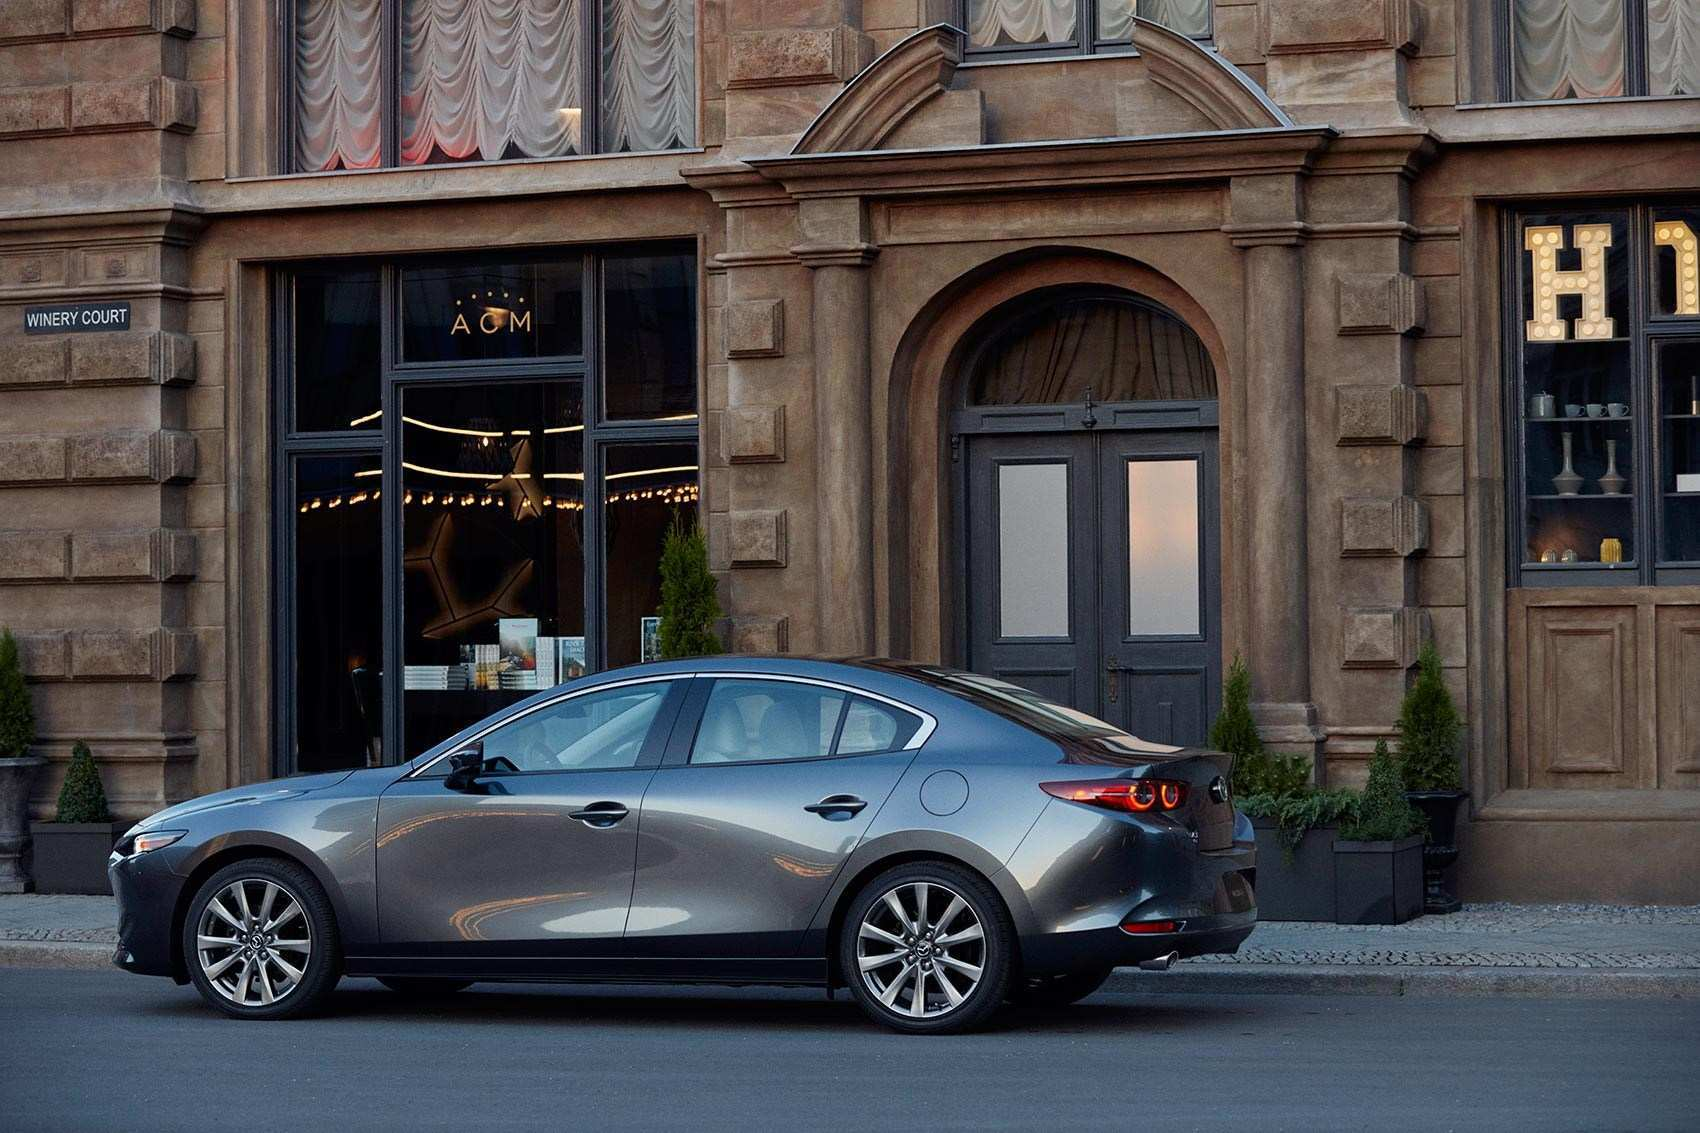 97 Great The Mazda 3 2019 Debut Exterior Style by The Mazda 3 2019 Debut Exterior